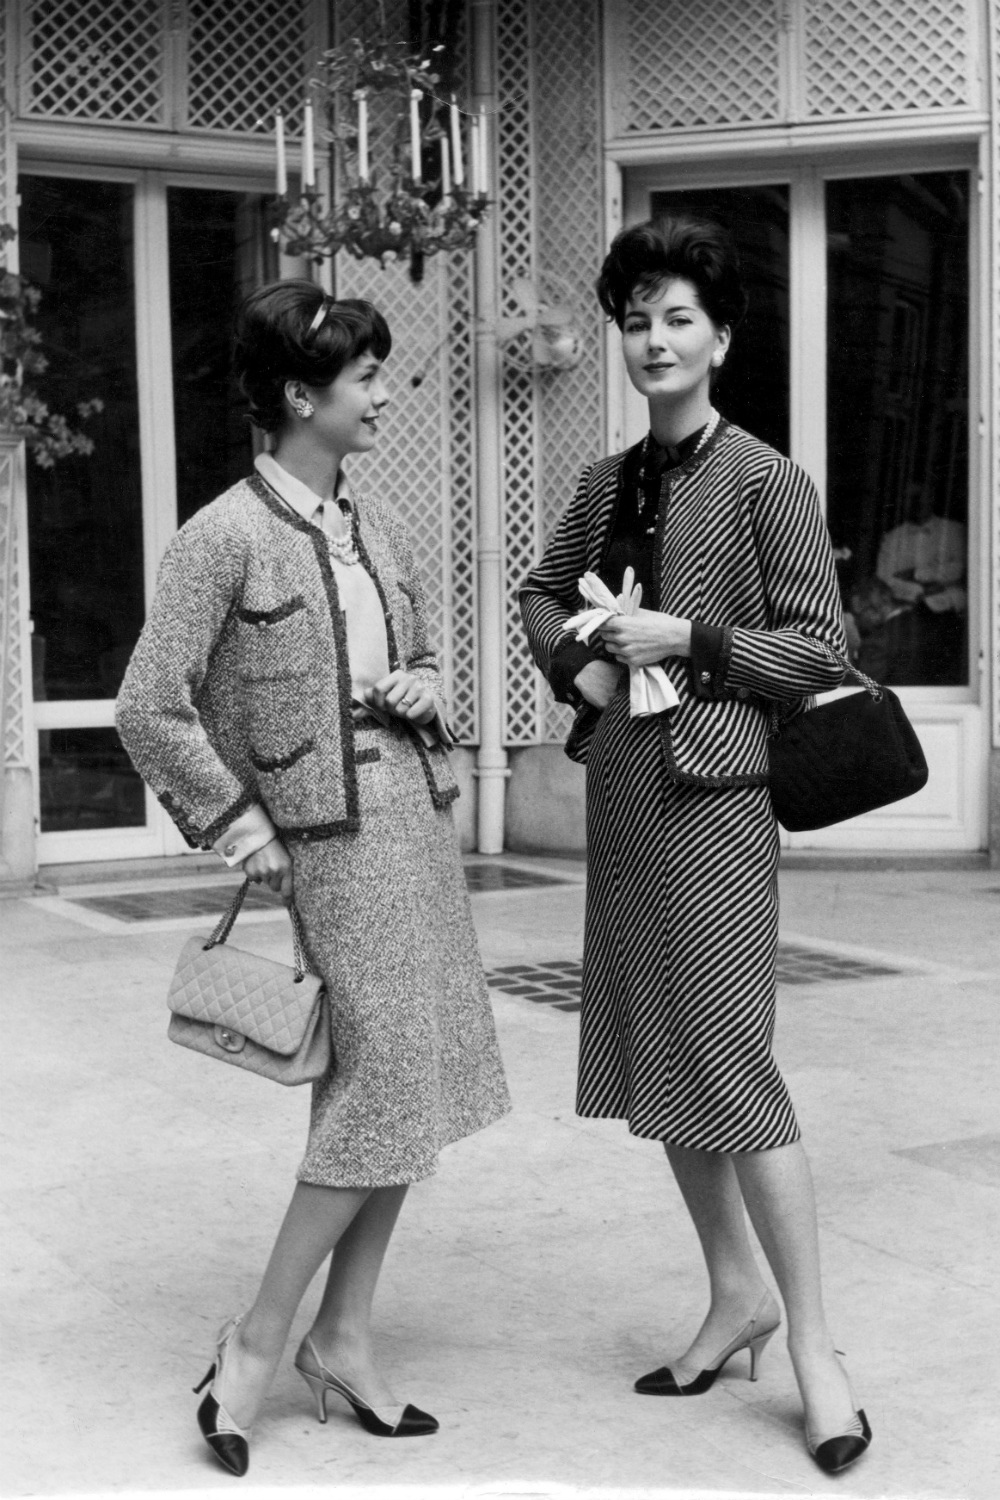 Chanel suit 1950s fashion moments